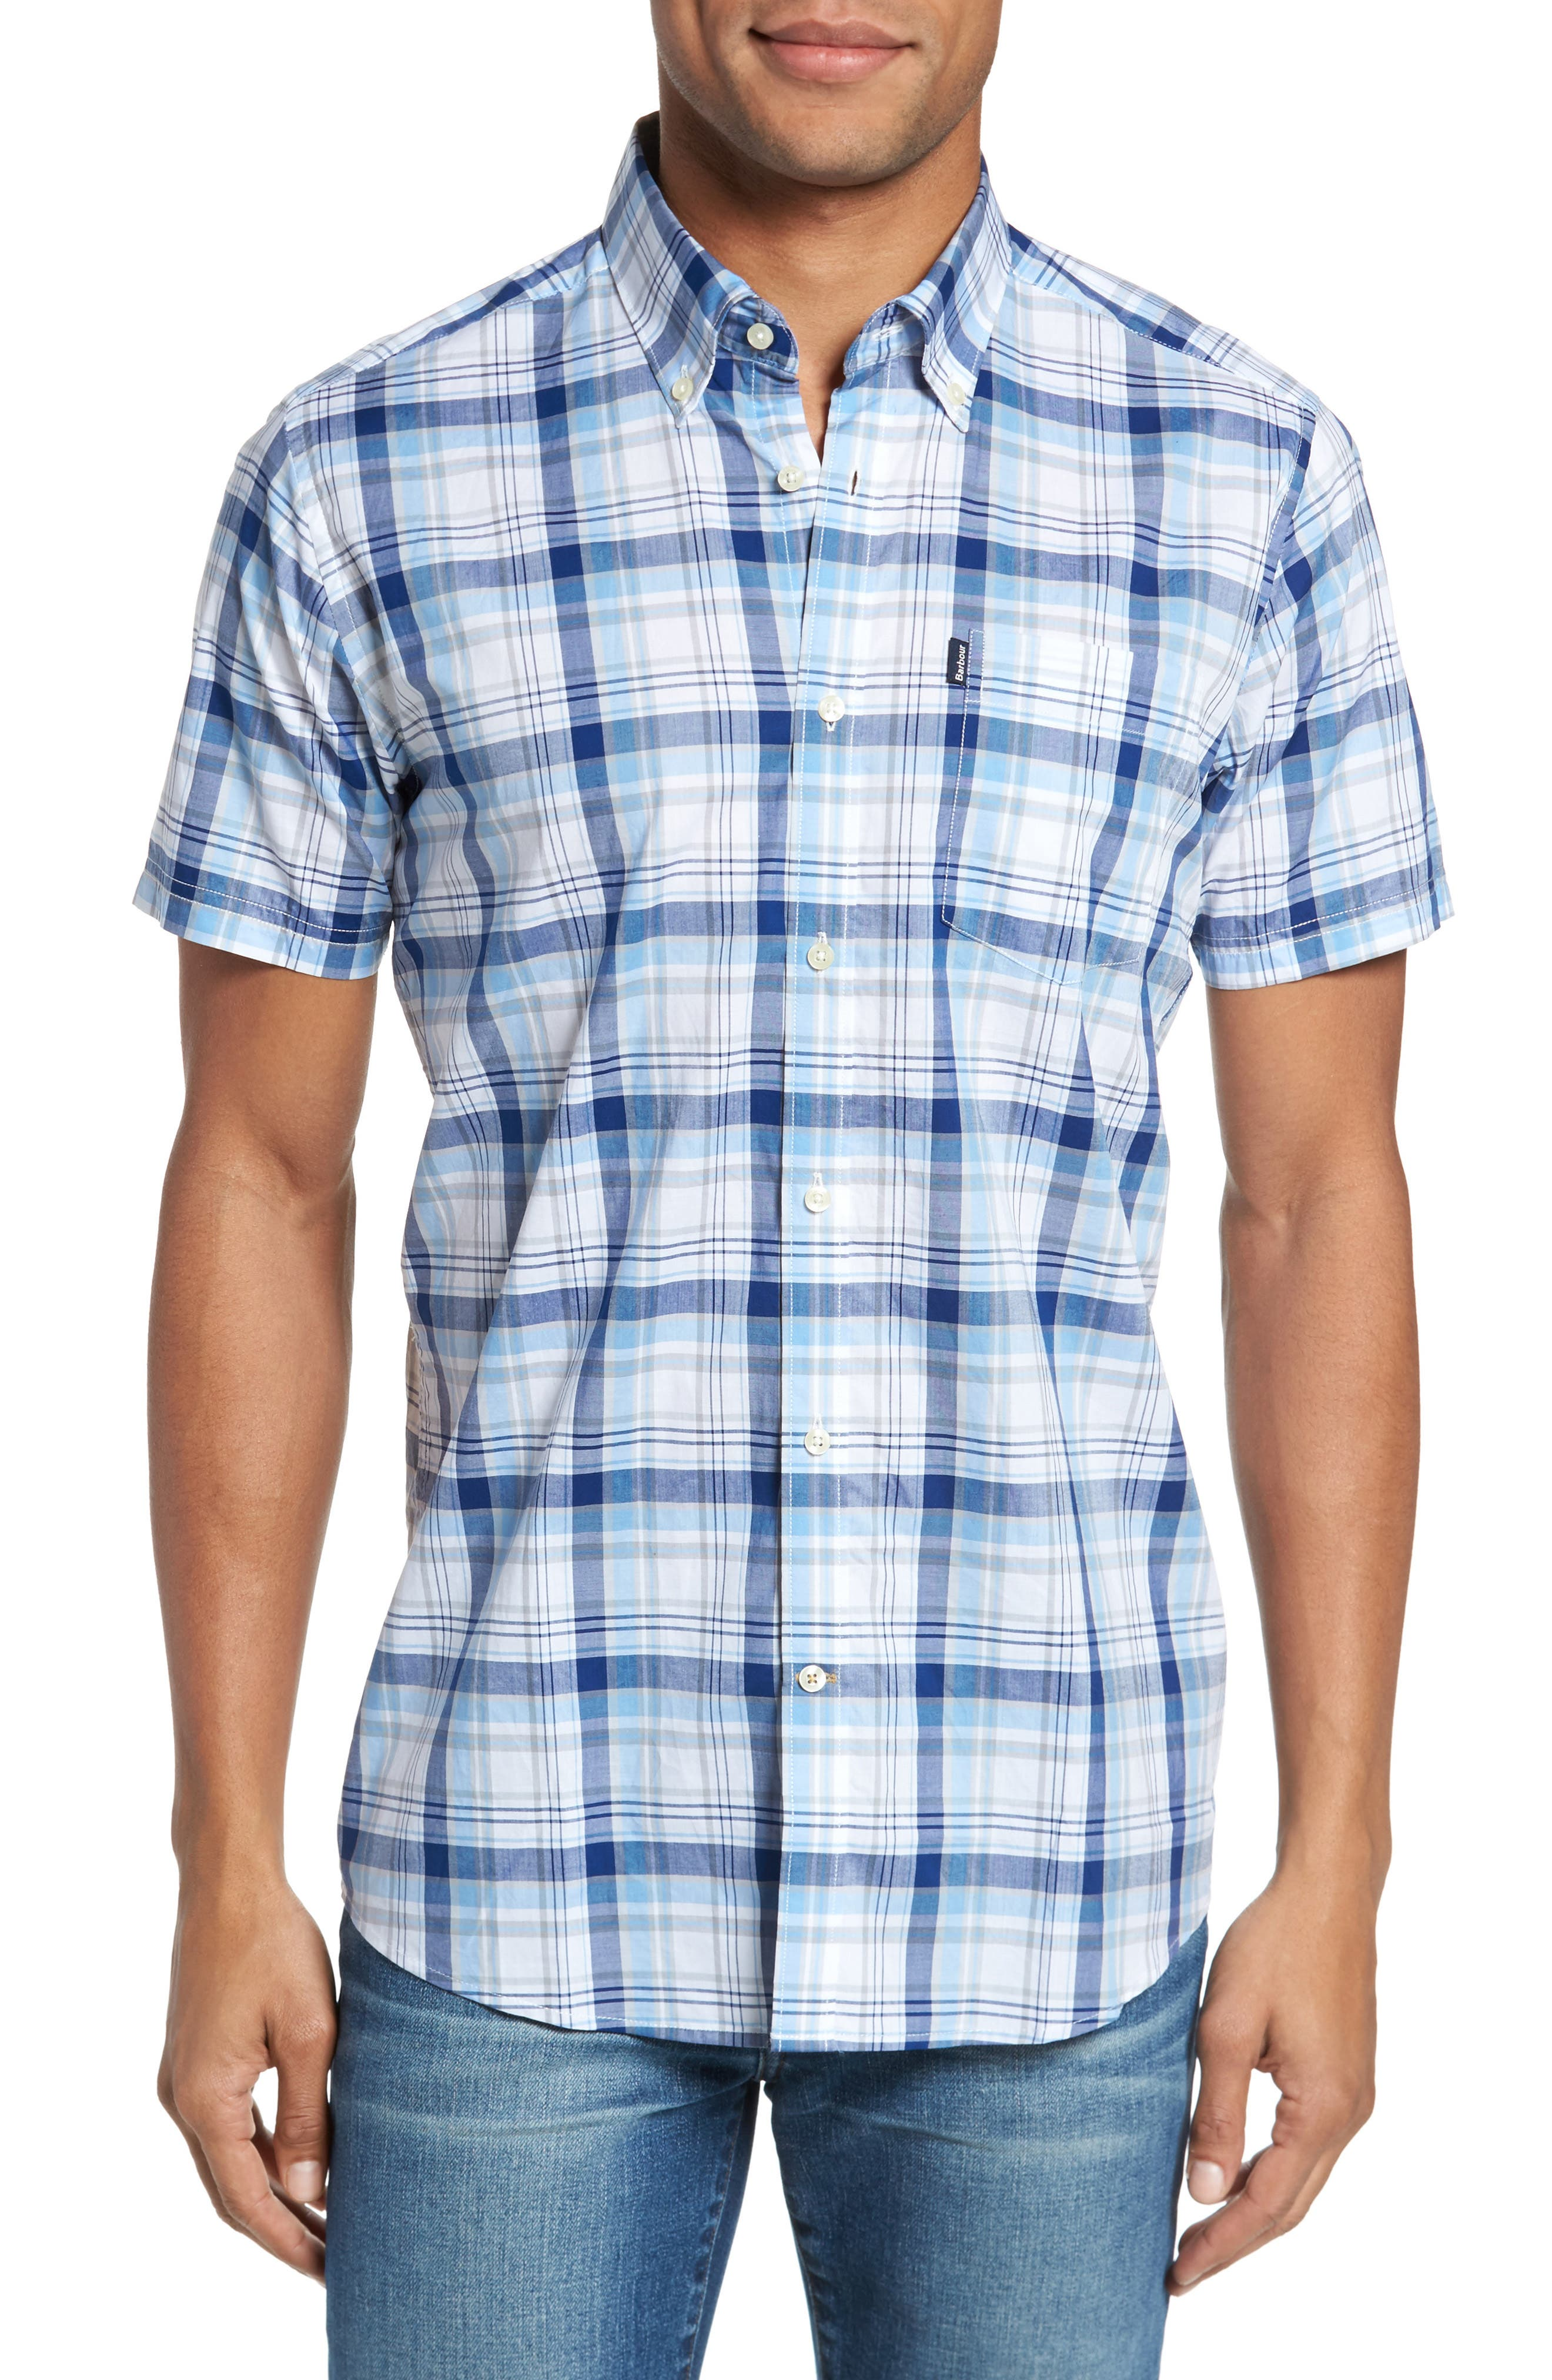 Gerald Tailored Fit Plaid Sport Shirt,                             Main thumbnail 1, color,                             Blue